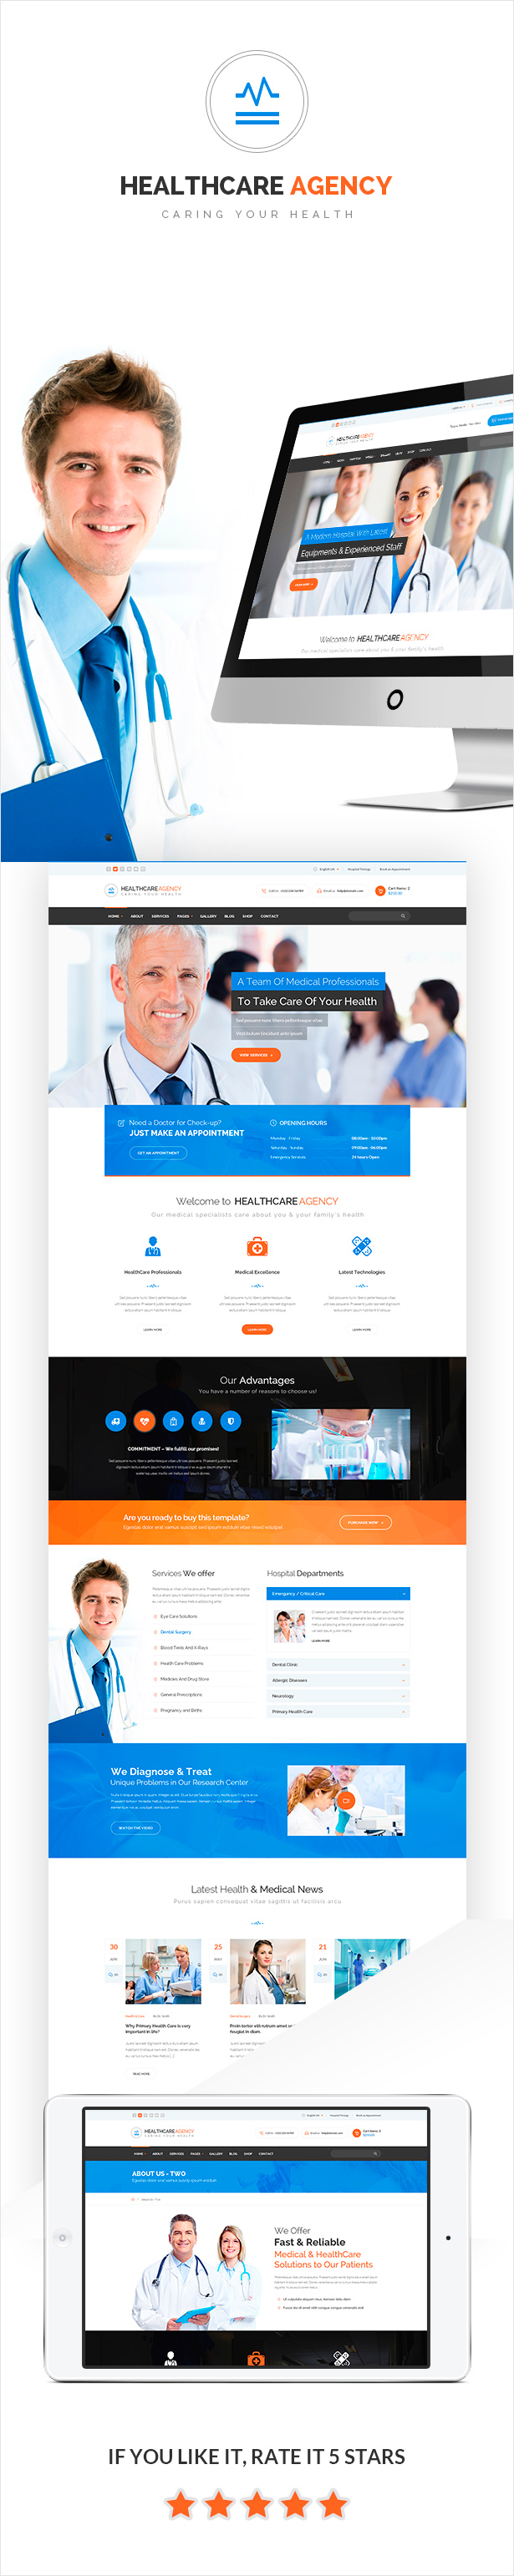 It features 2 home page variations 2 about us pages 3 services pages doctors page blog pages and shop pages